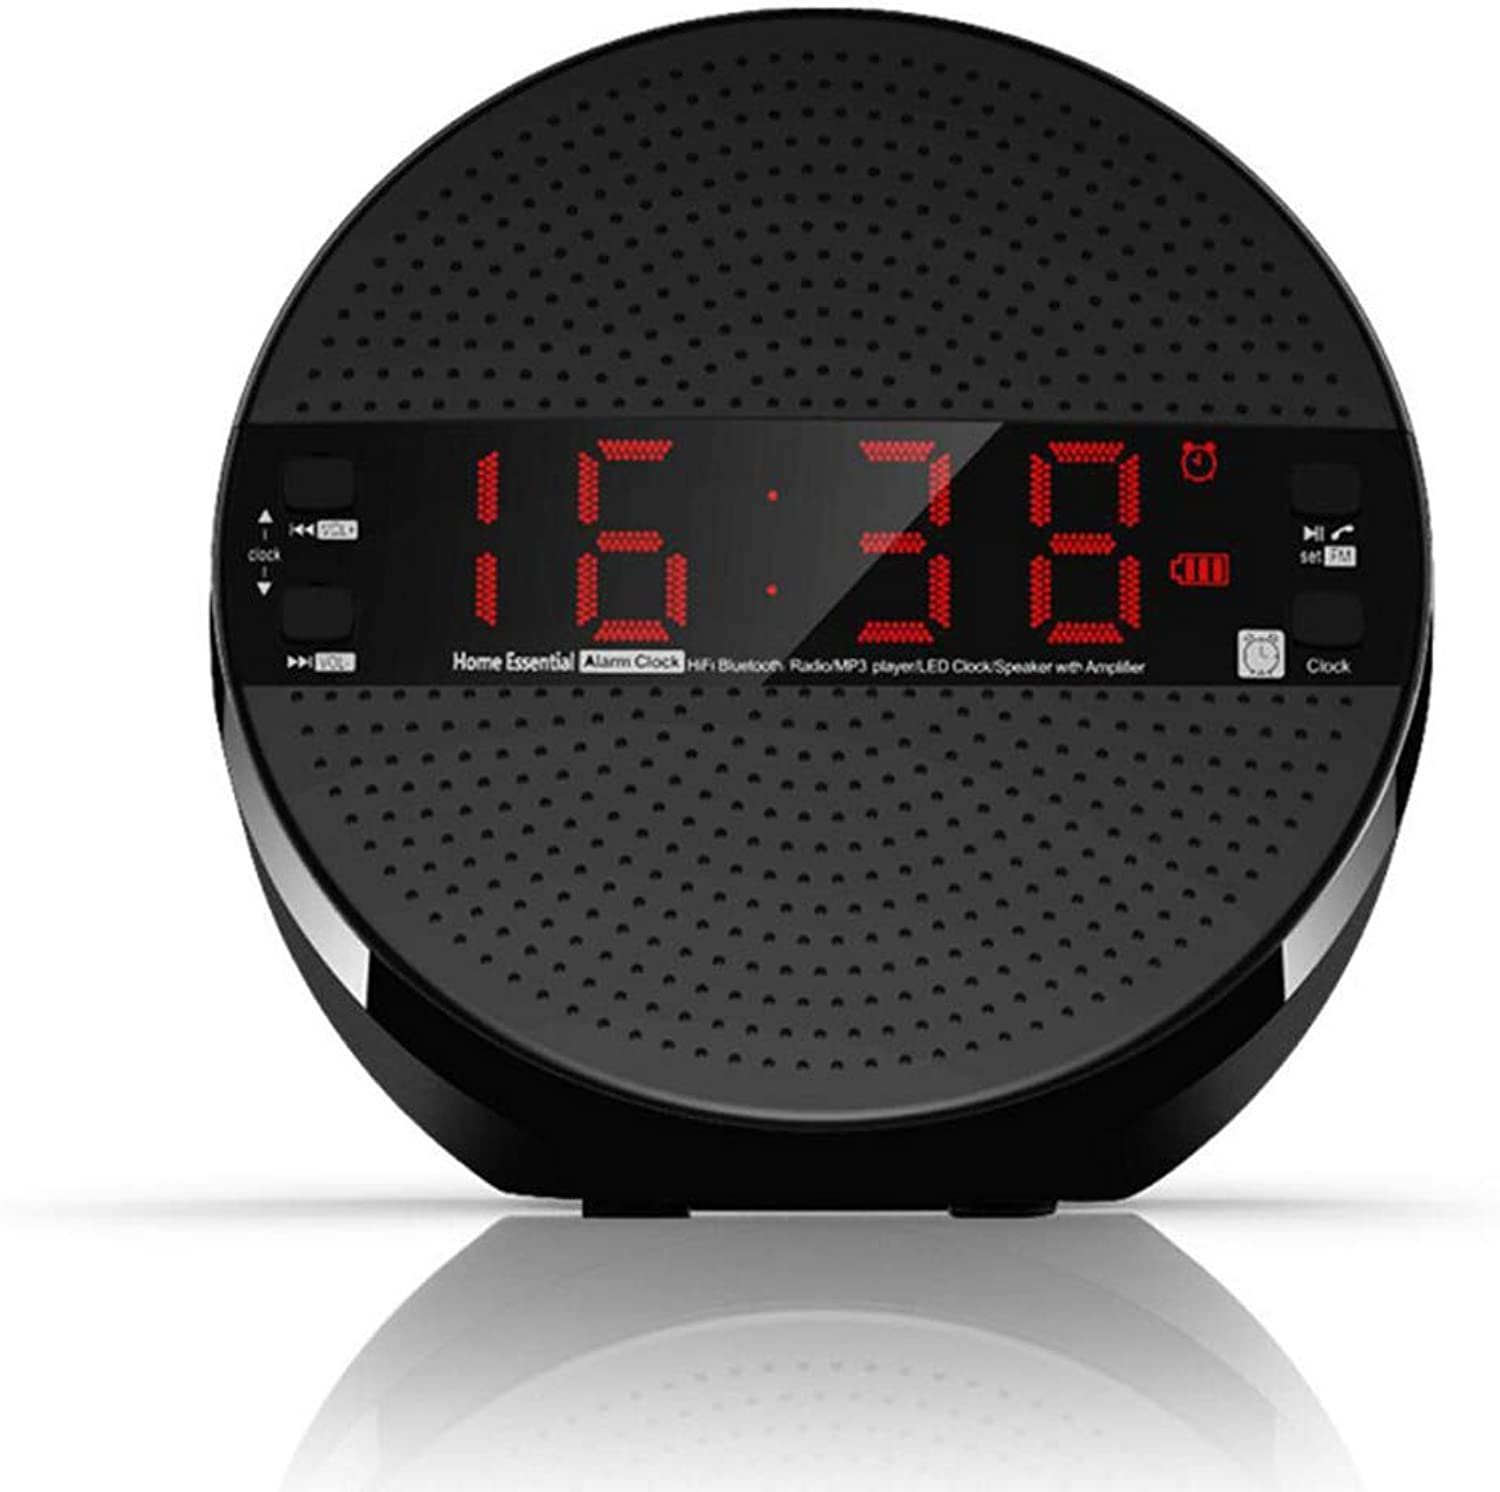 Black Desktop blueetooth Speaker LED Clock Subwoofer Radio Portable Card U Disk Wireless Compact Stereo Support Remote Control Operation Timing Shutdown